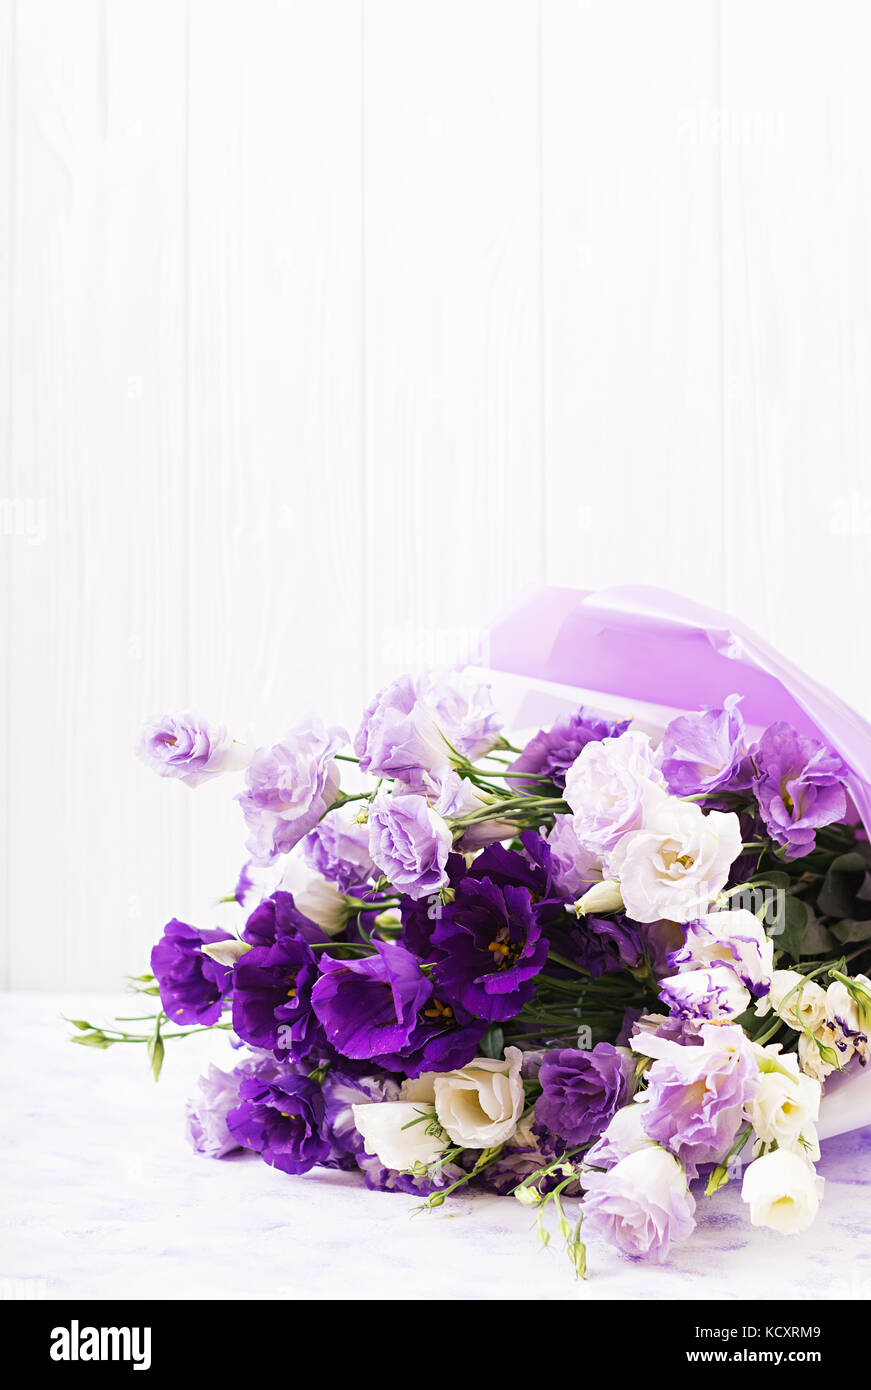 Beautiful flowers bouquet mix of white, purple and violet eustoma. Stock Photo